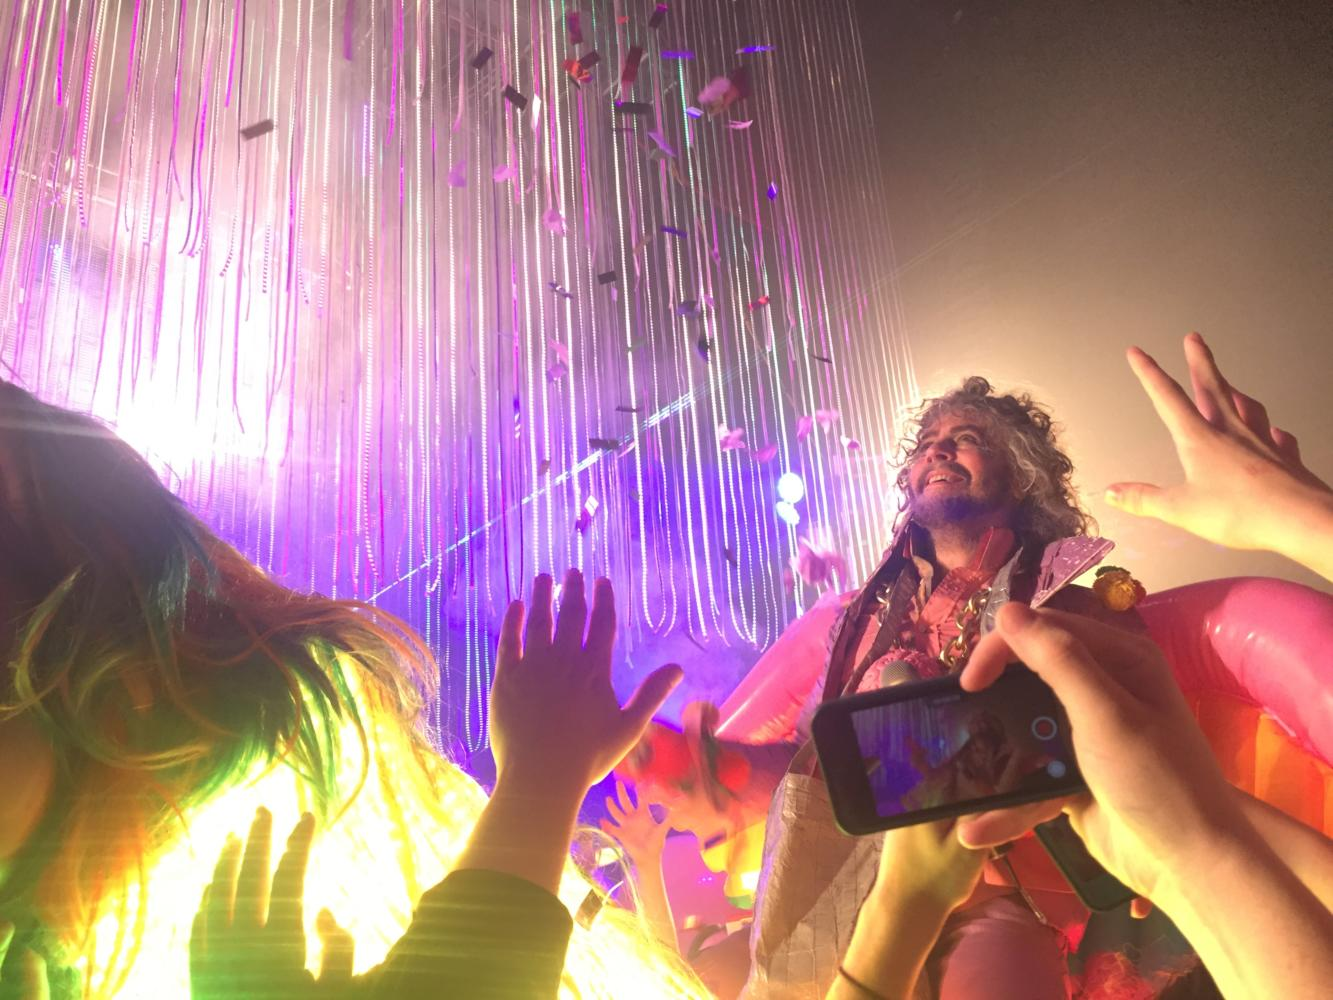 Wayne+Coyne%2C+lead+singer+of+the+Flaming+Lips%2C+passes+through+the+crowd+on+a+neon+unicorn+during+the+song+%22There+Should+be+Unicorns.%22+Coyne+utilized+neon+lights+and++inflatable+objects+to+create+an+interactive+performance+at+the+Pageant.+